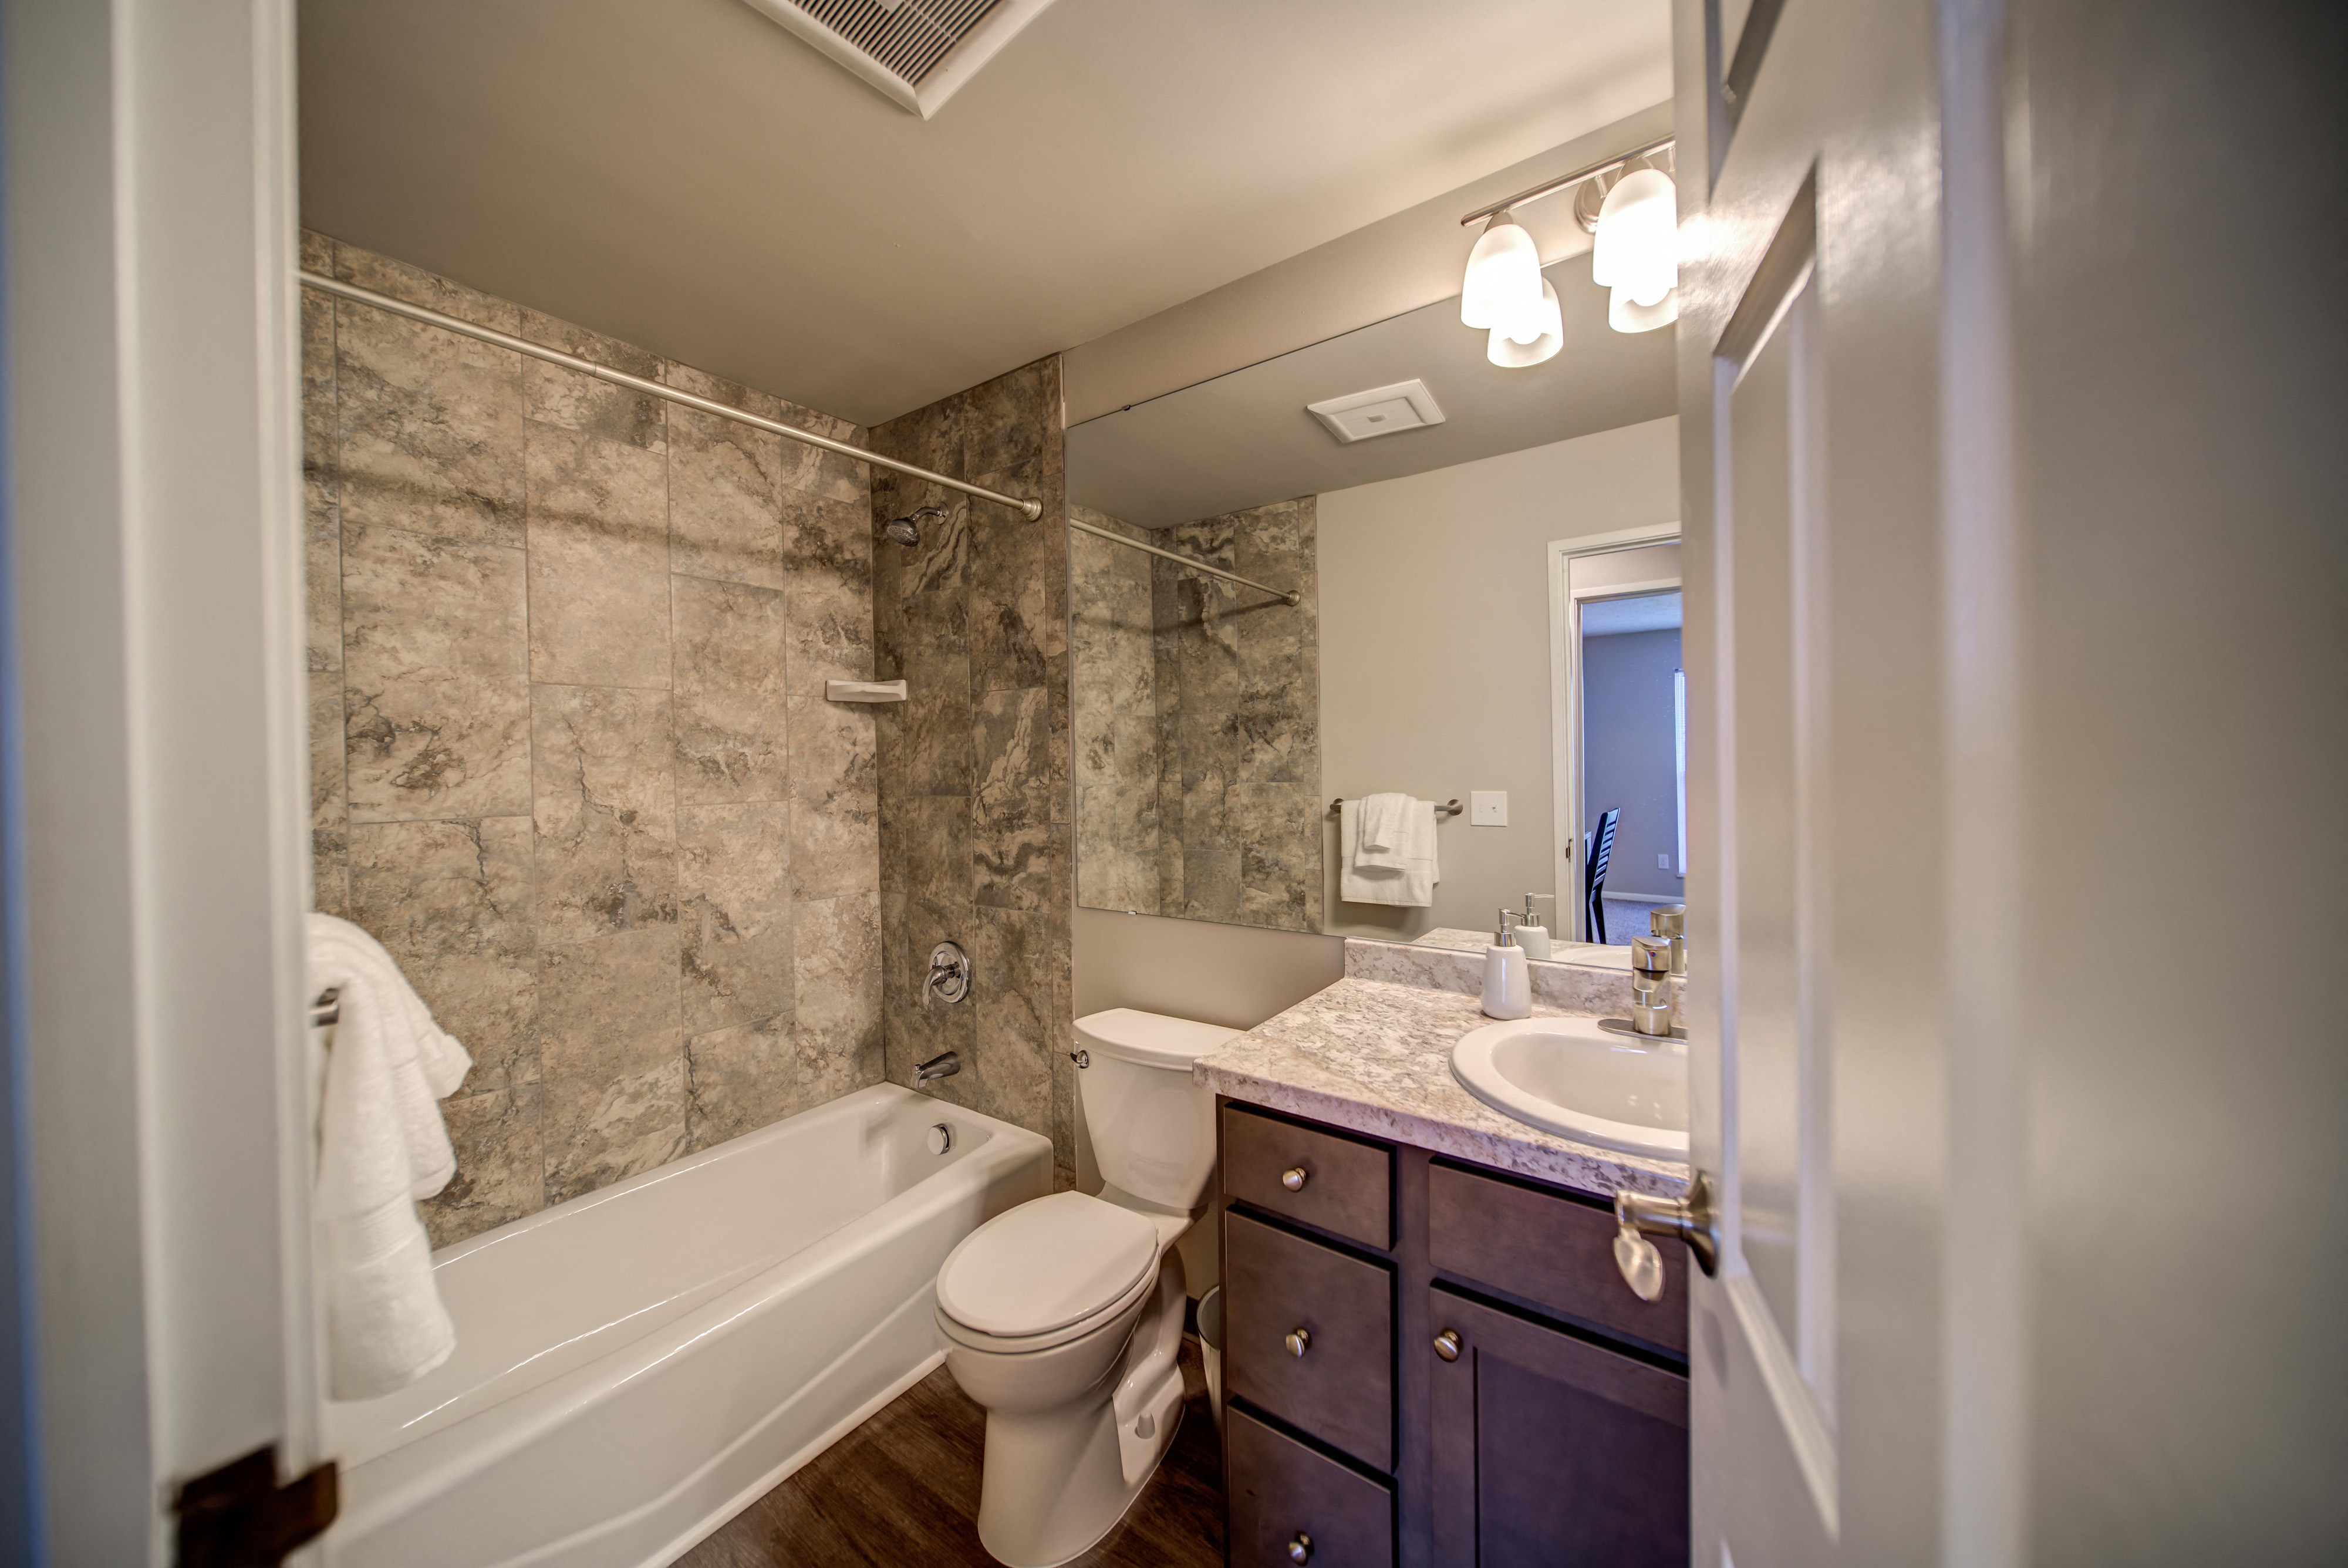 Tiled Bathroom with Tub and Dark Cabinets